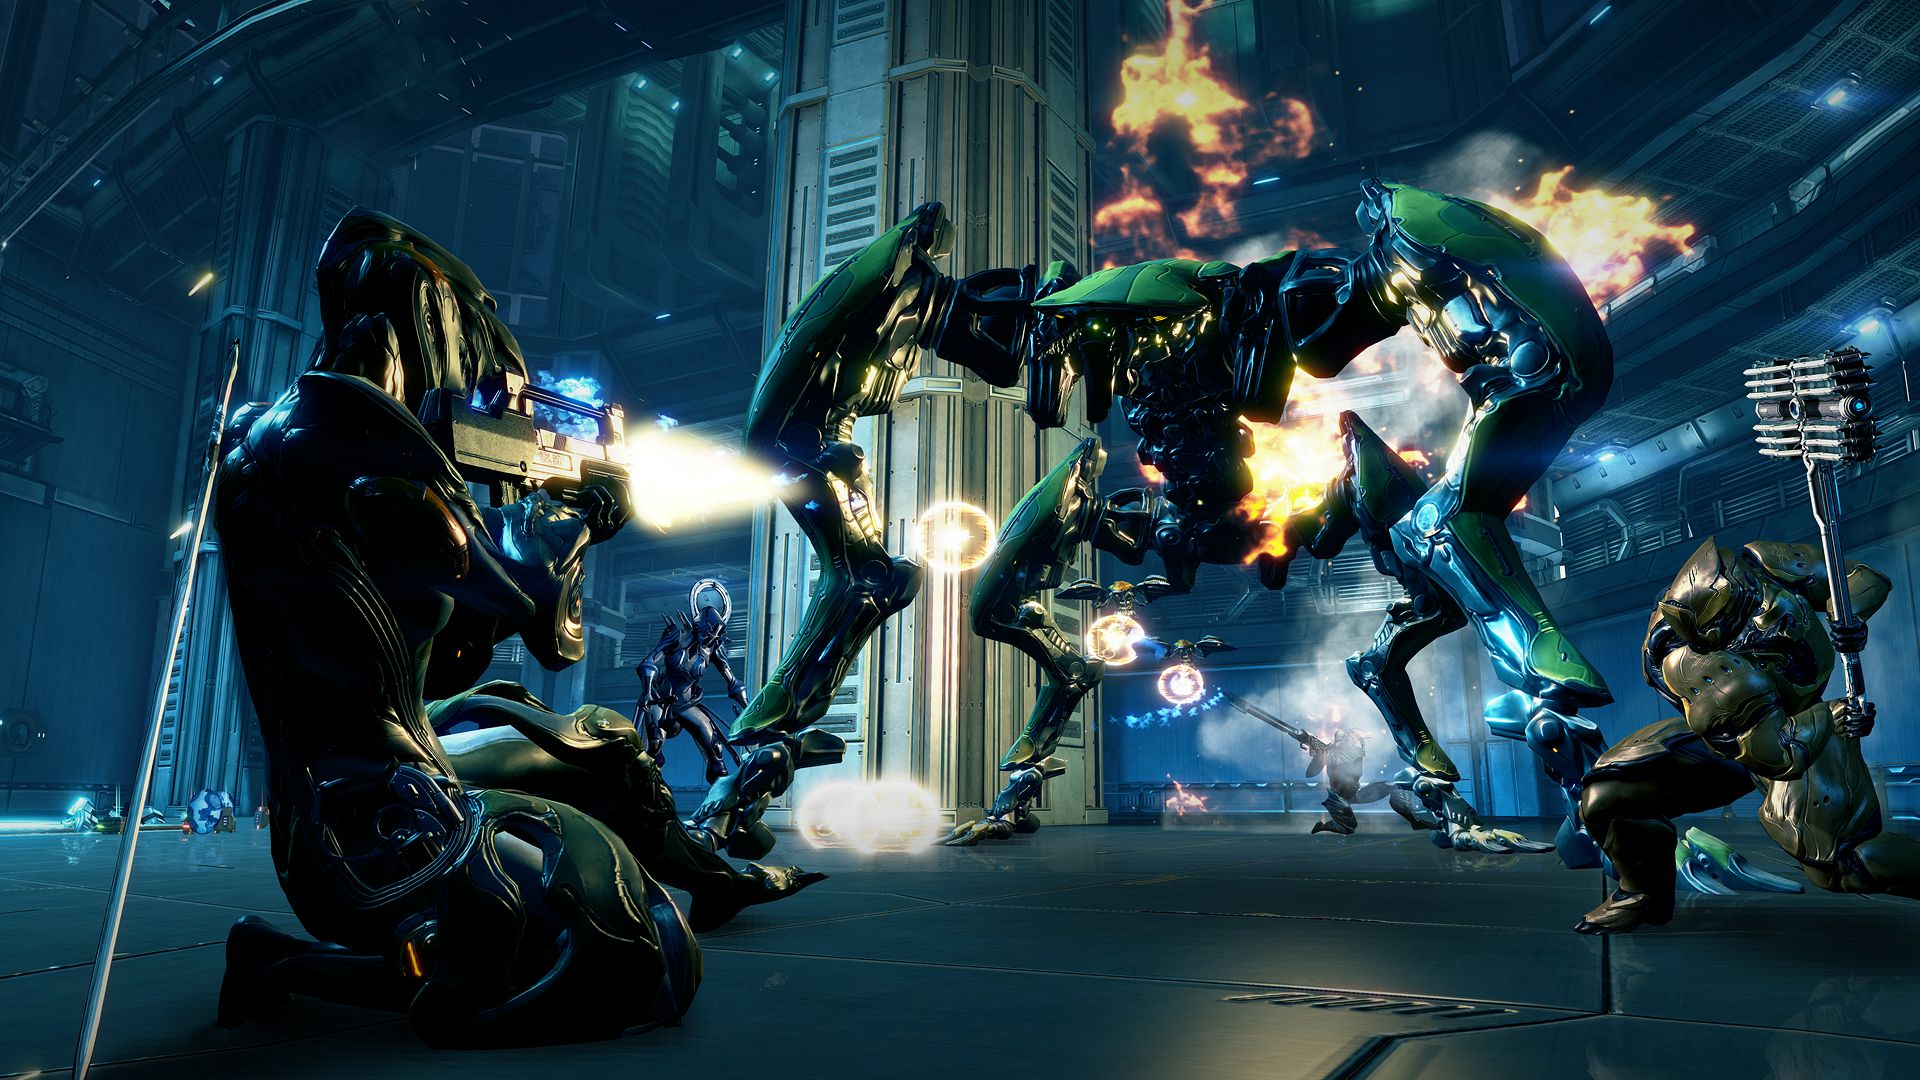 This is Warframe, Digital Extreme's other game.